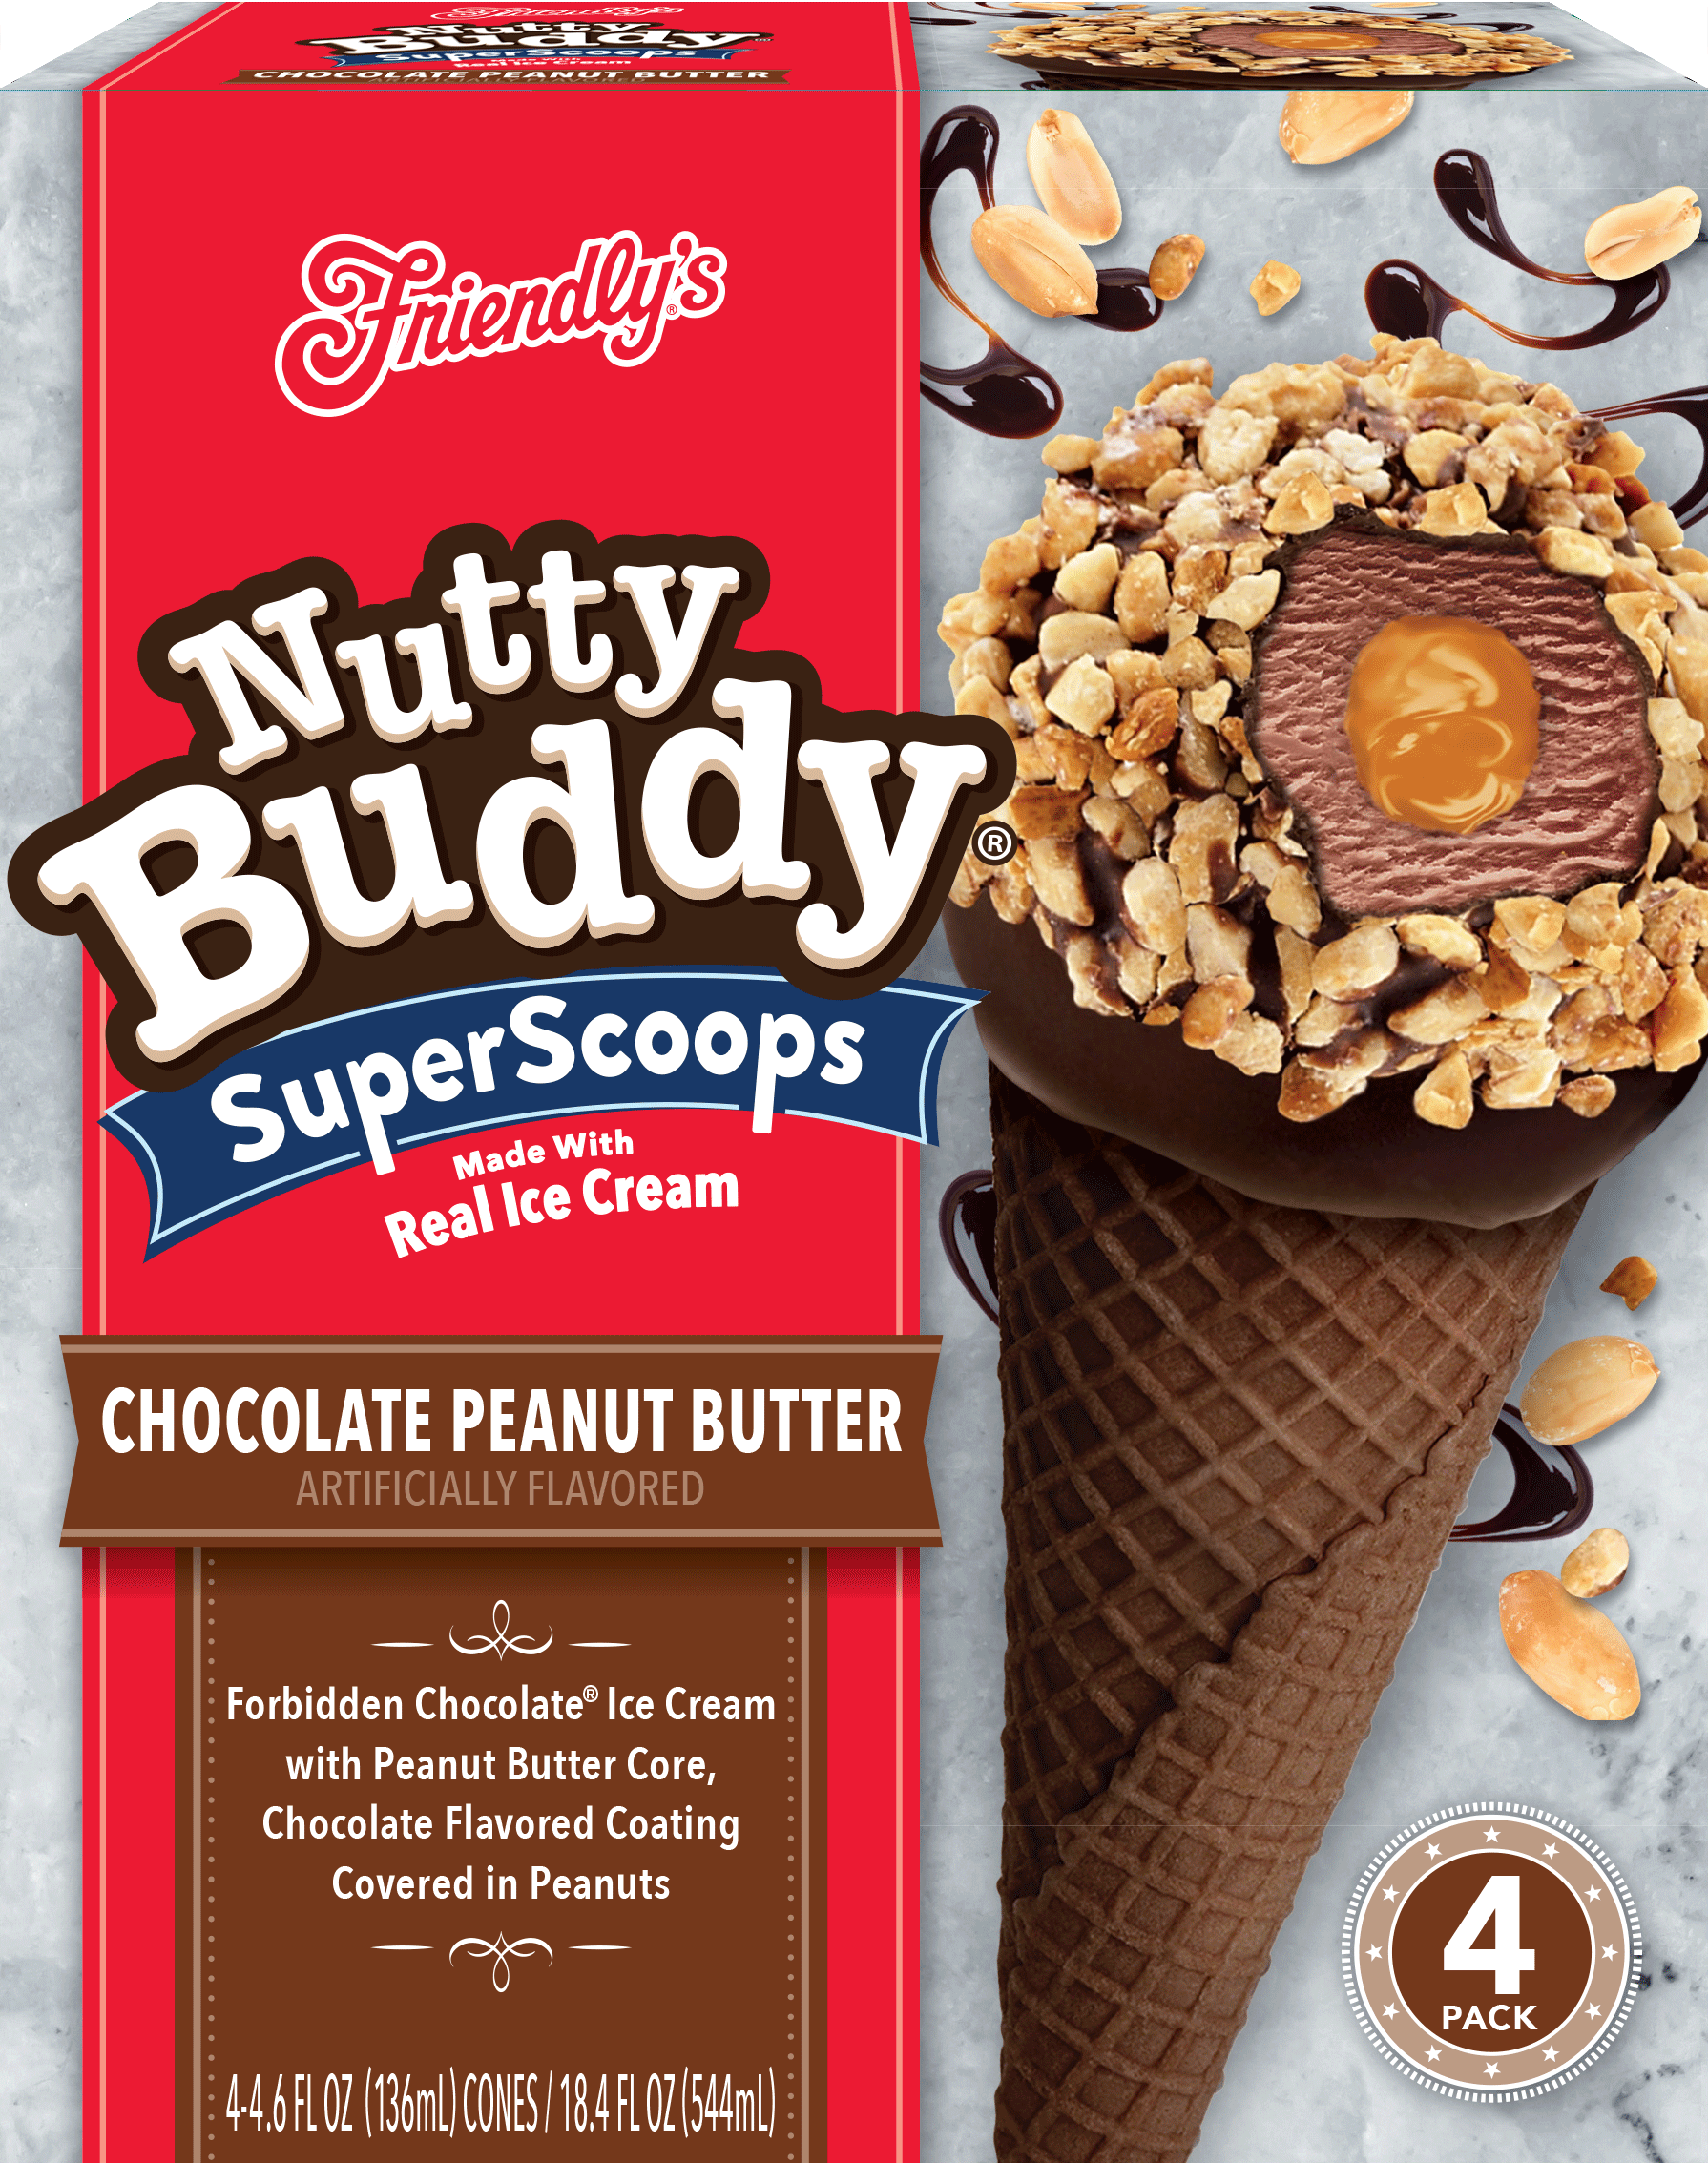 Chocolate Peanut Butter Nutty Buddy